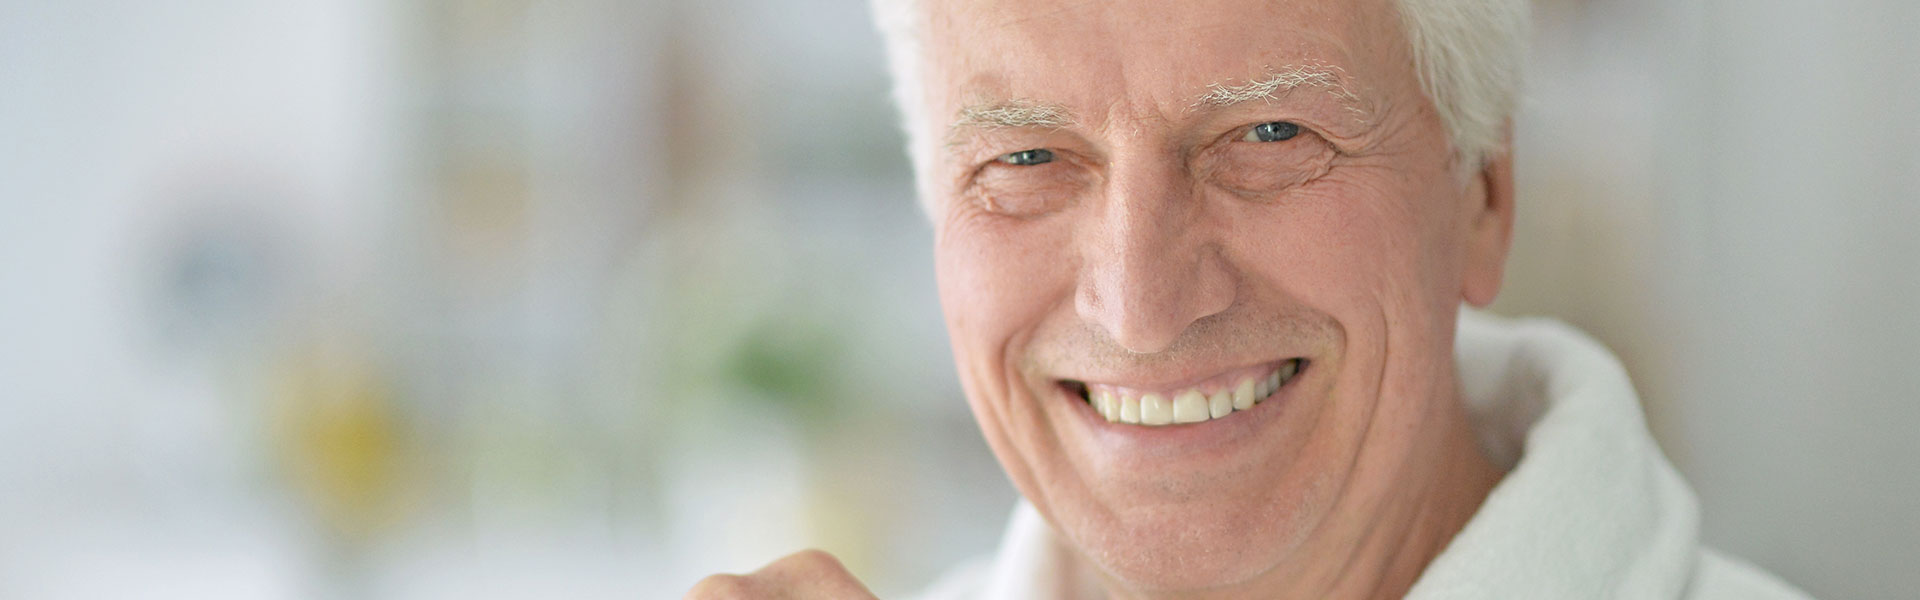 Man smiling confidently